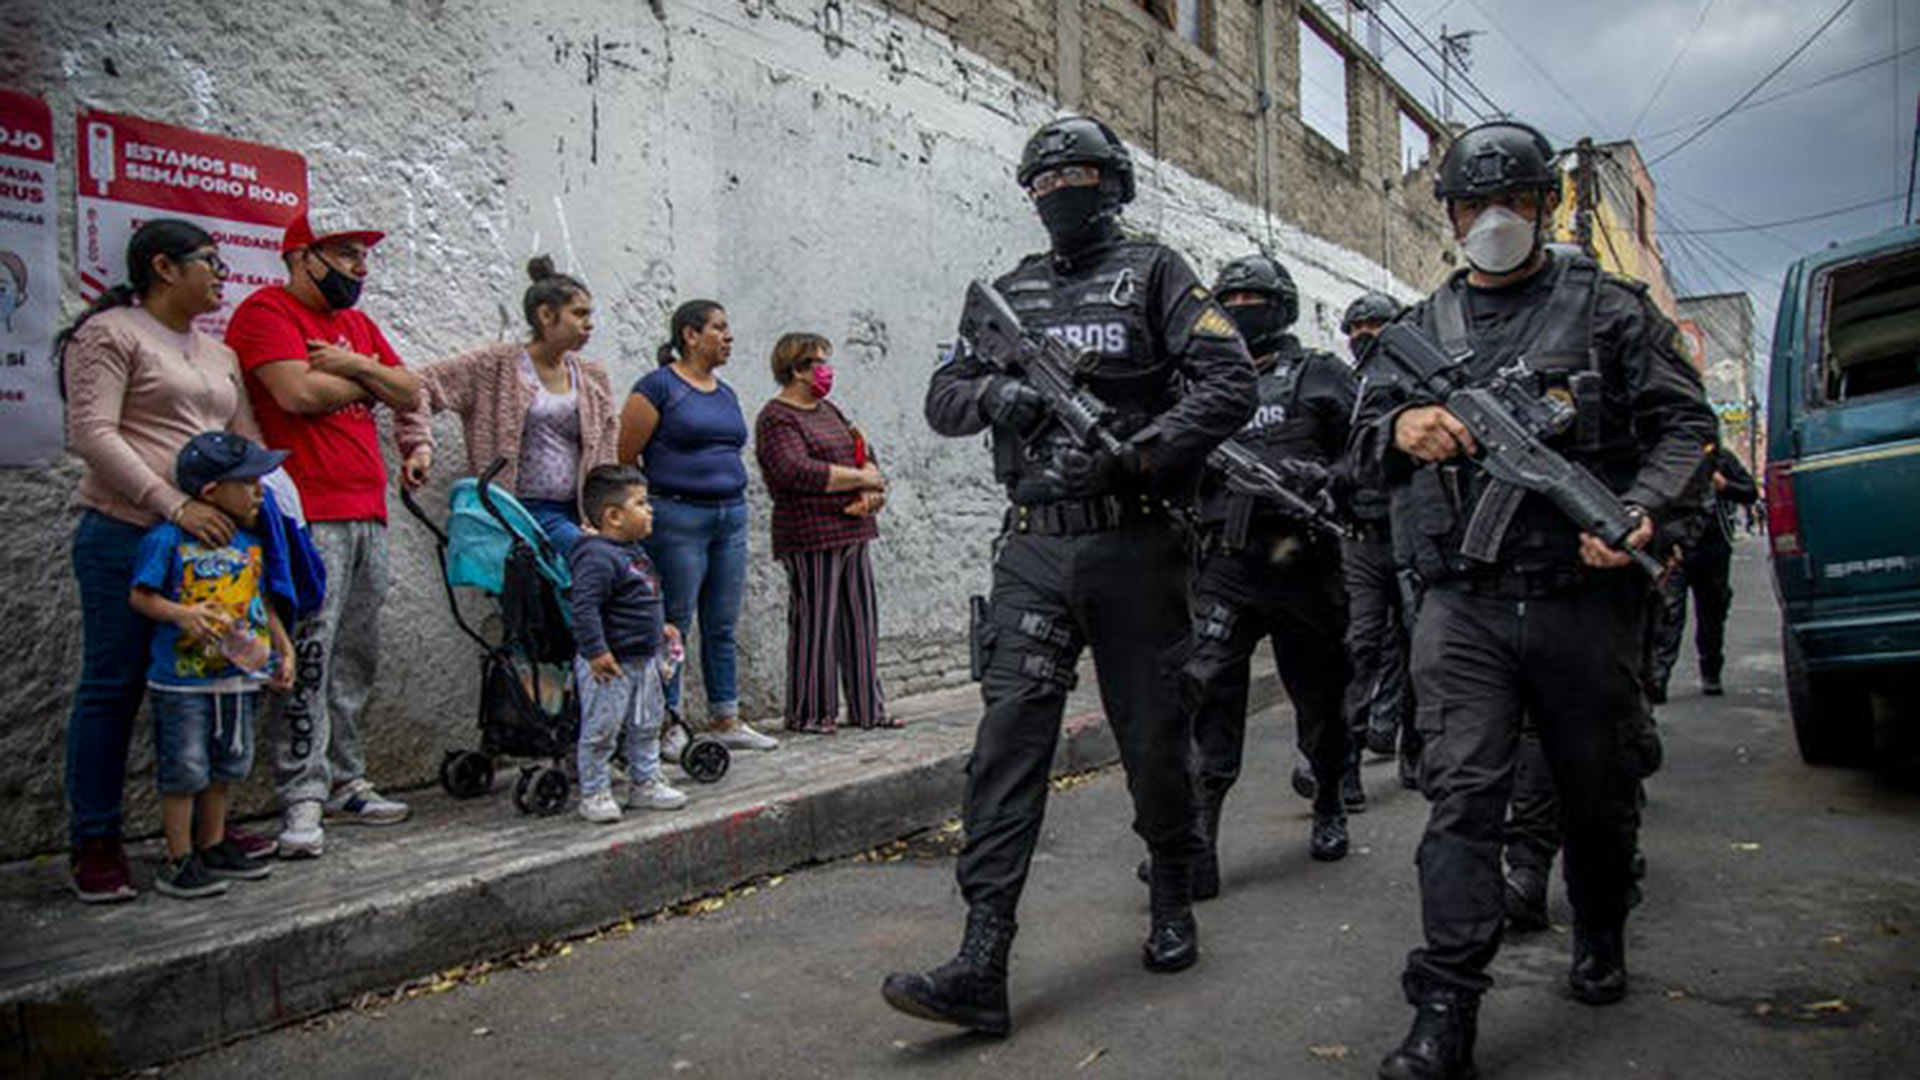 Heavily armed police in Mexico. Getty Images